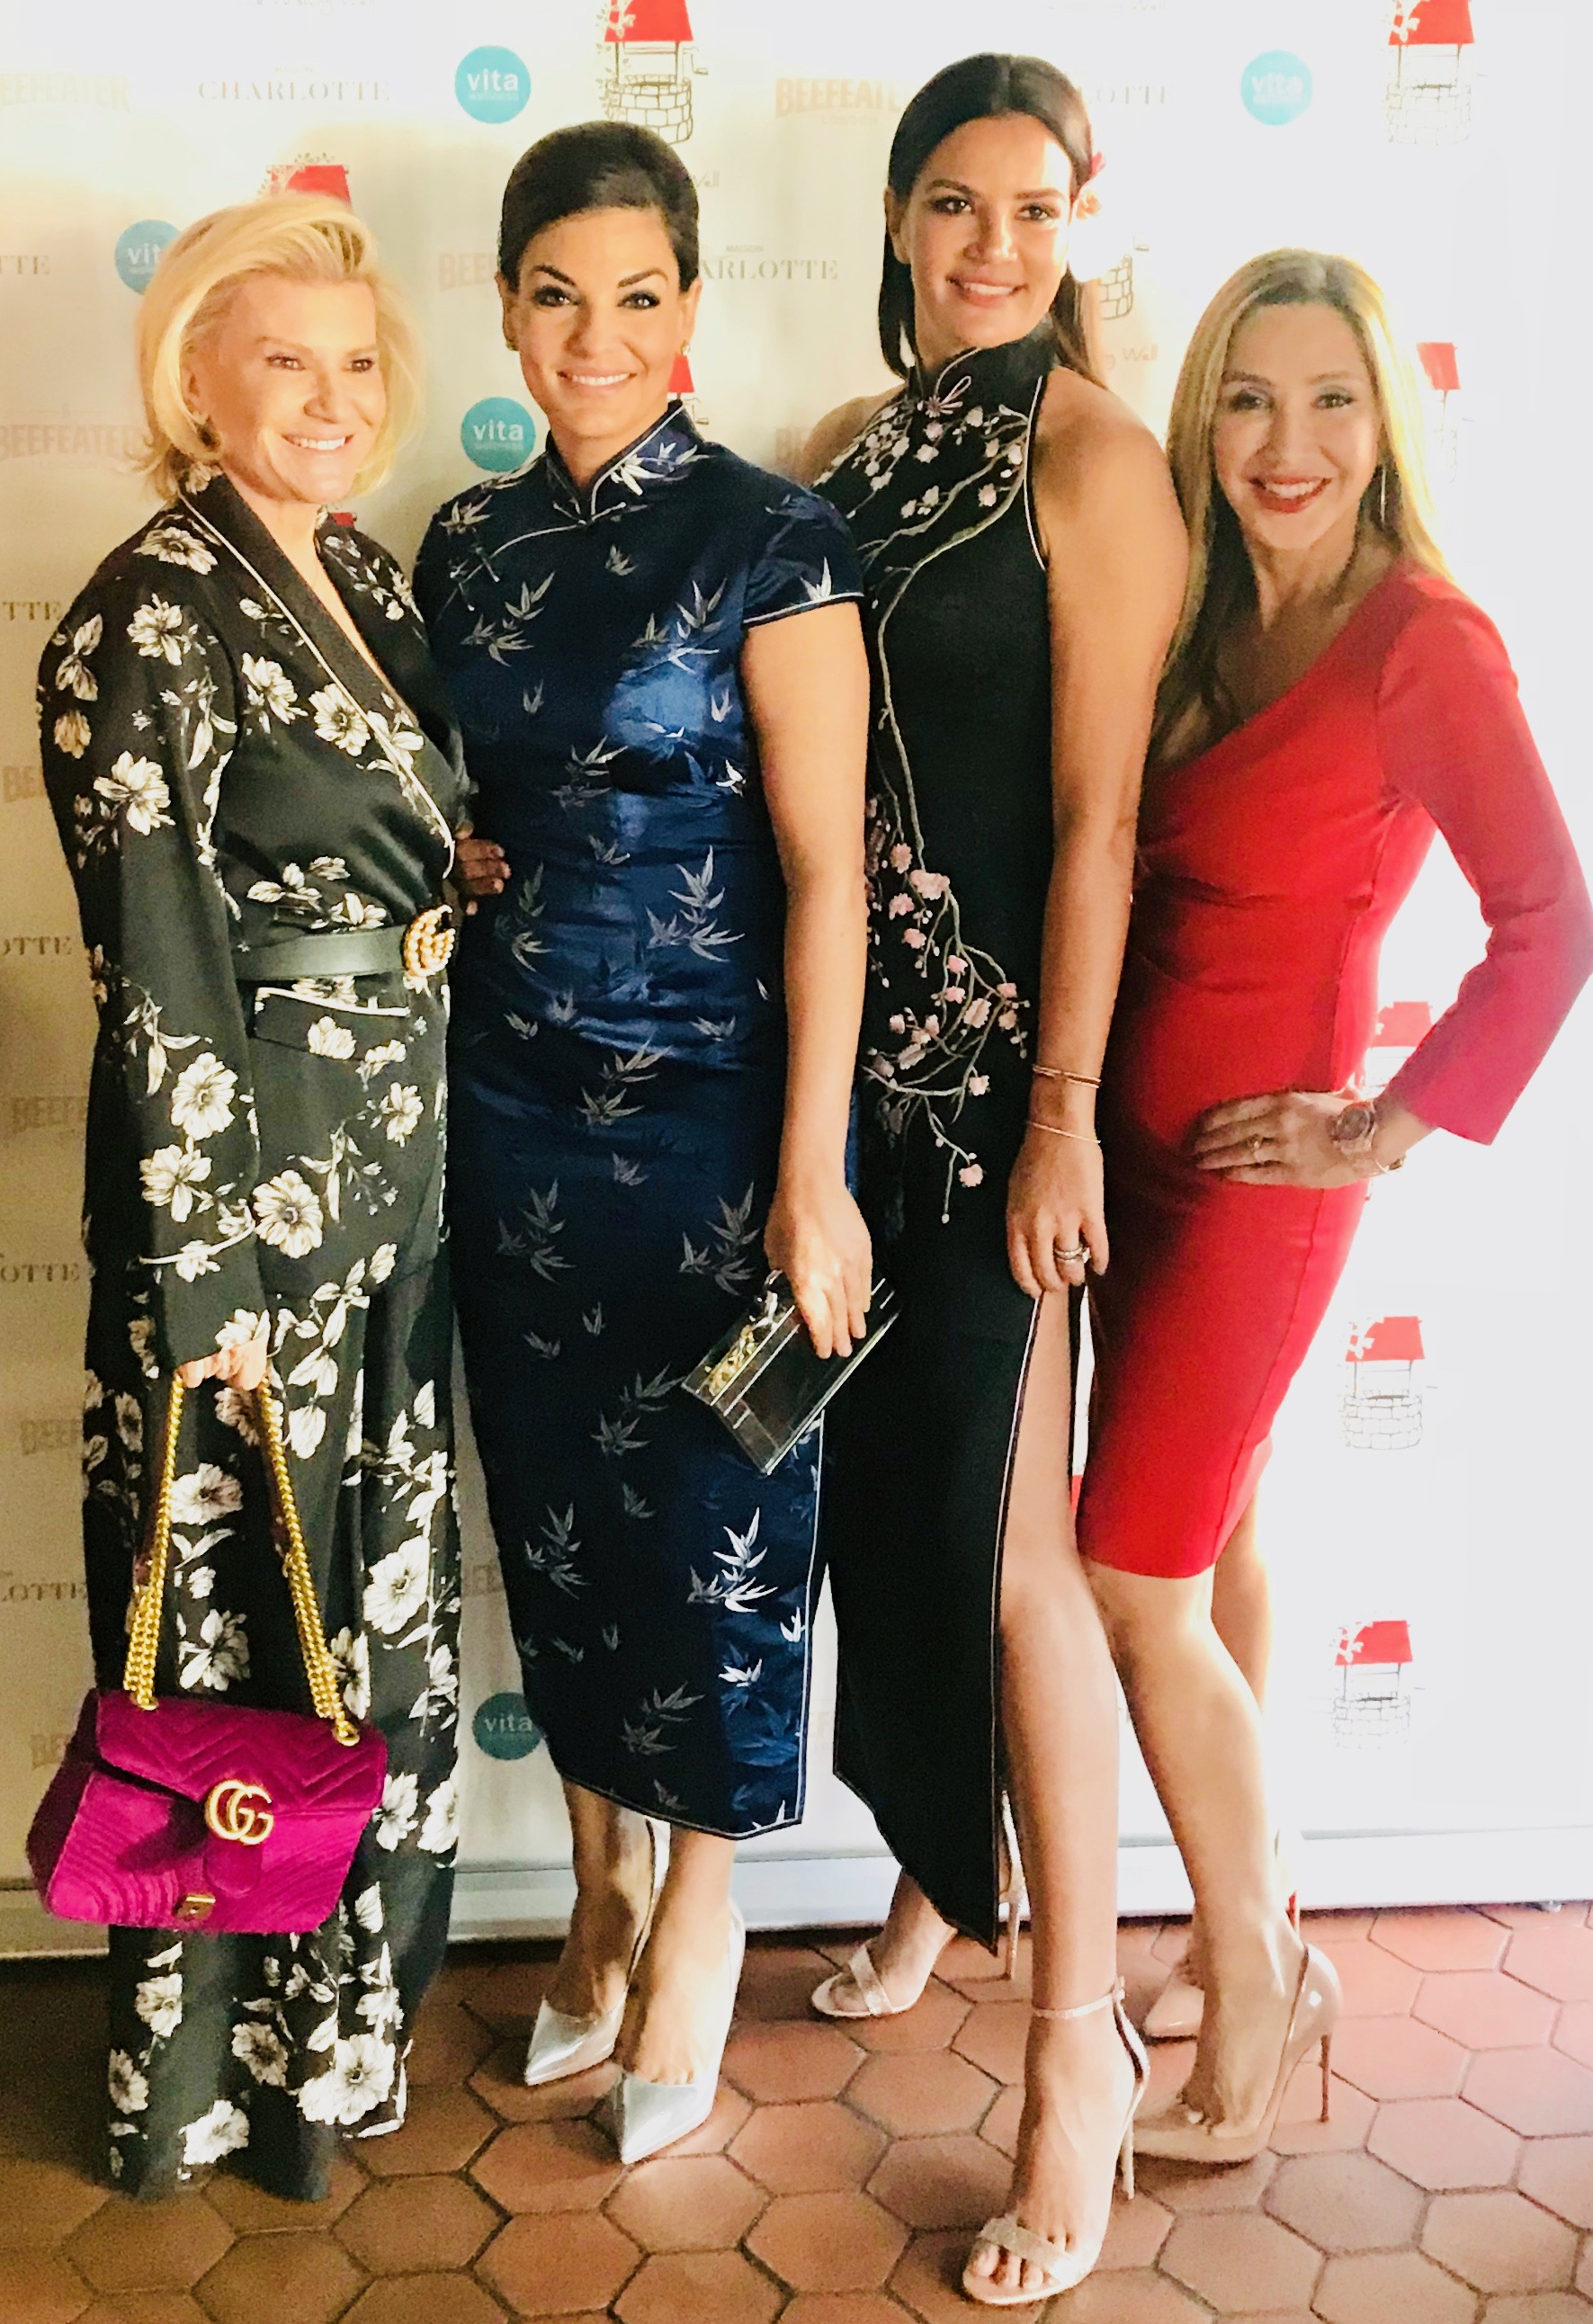 Real Housewives of Sydney Victoria Rees, Nicole O'Neil, Krissy Marsh and Matty Samaei